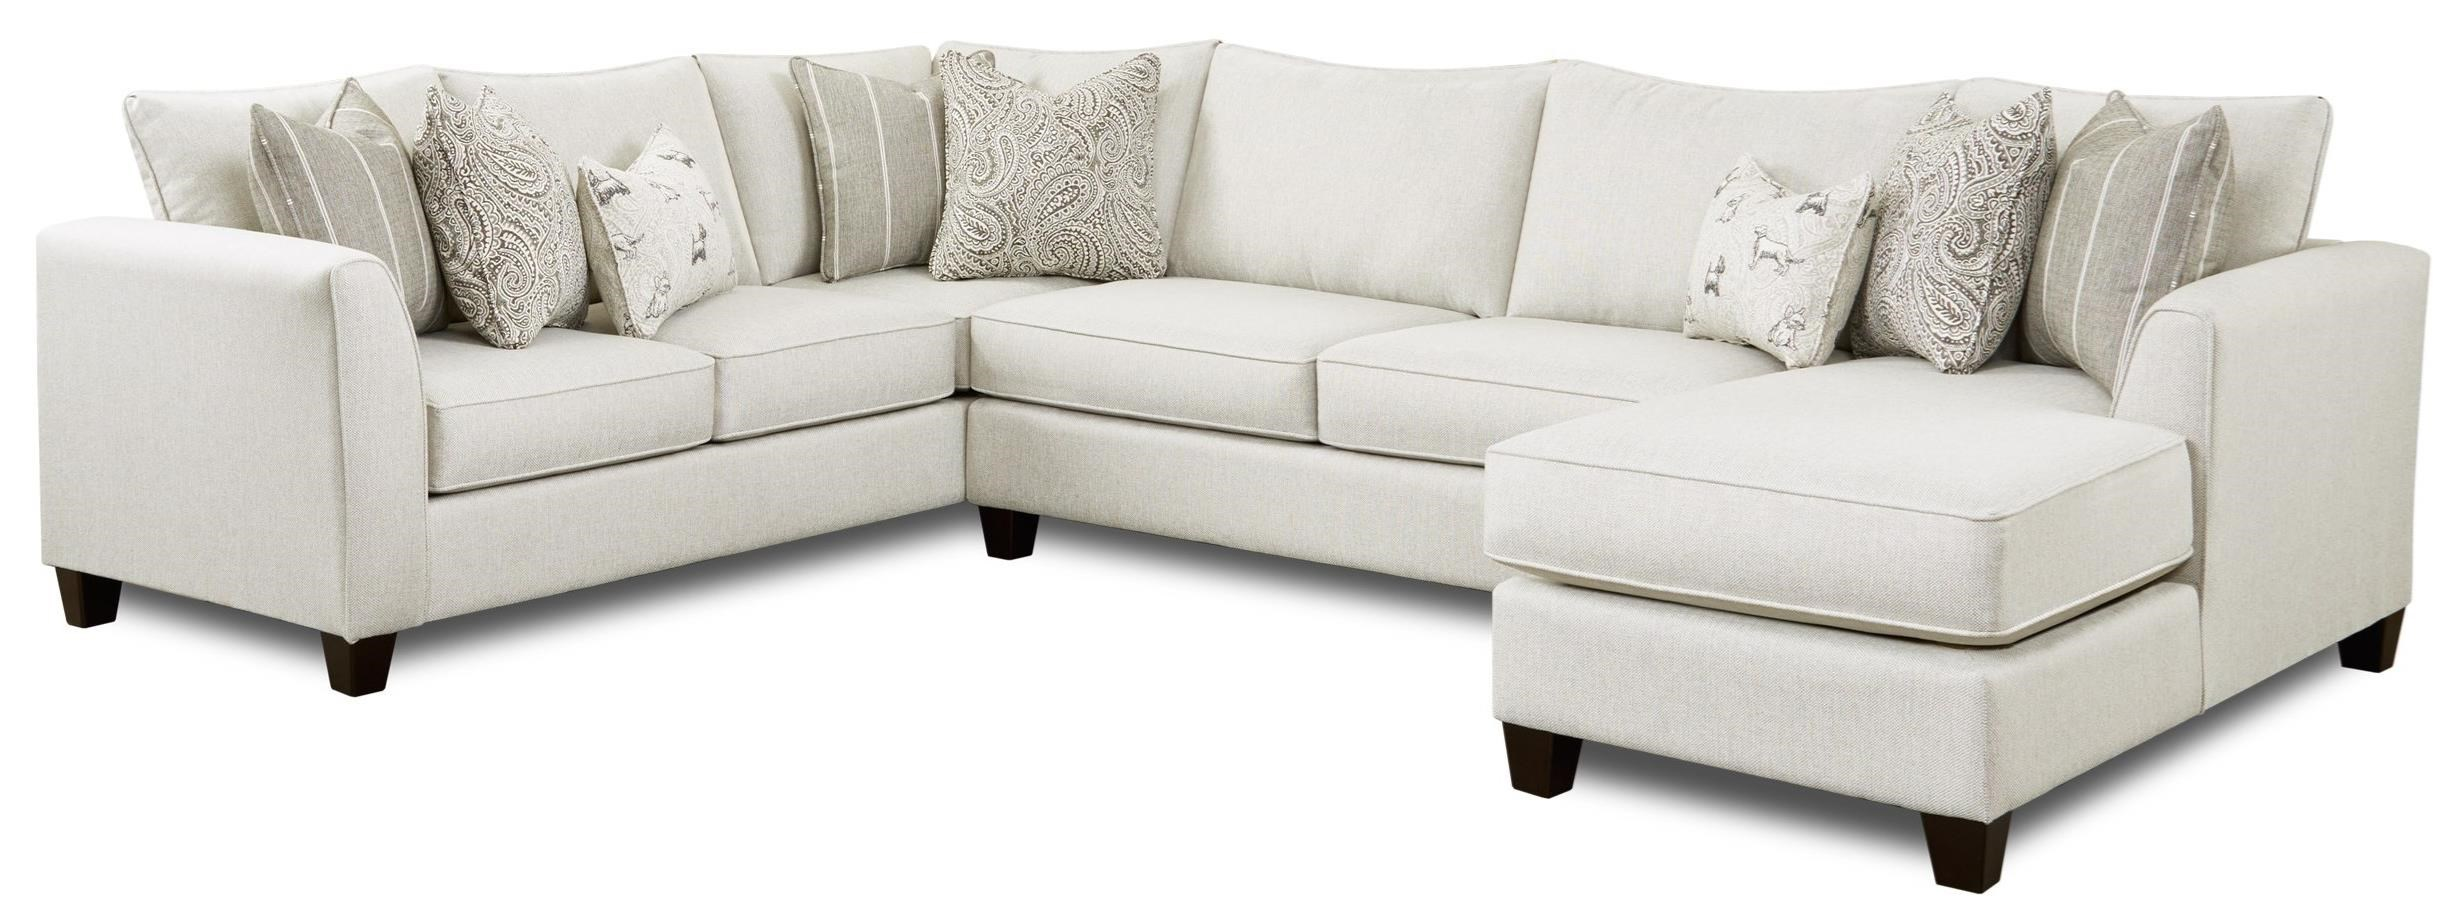 28 3-Piece Sectional with Chaise by FN at Lindy's Furniture Company